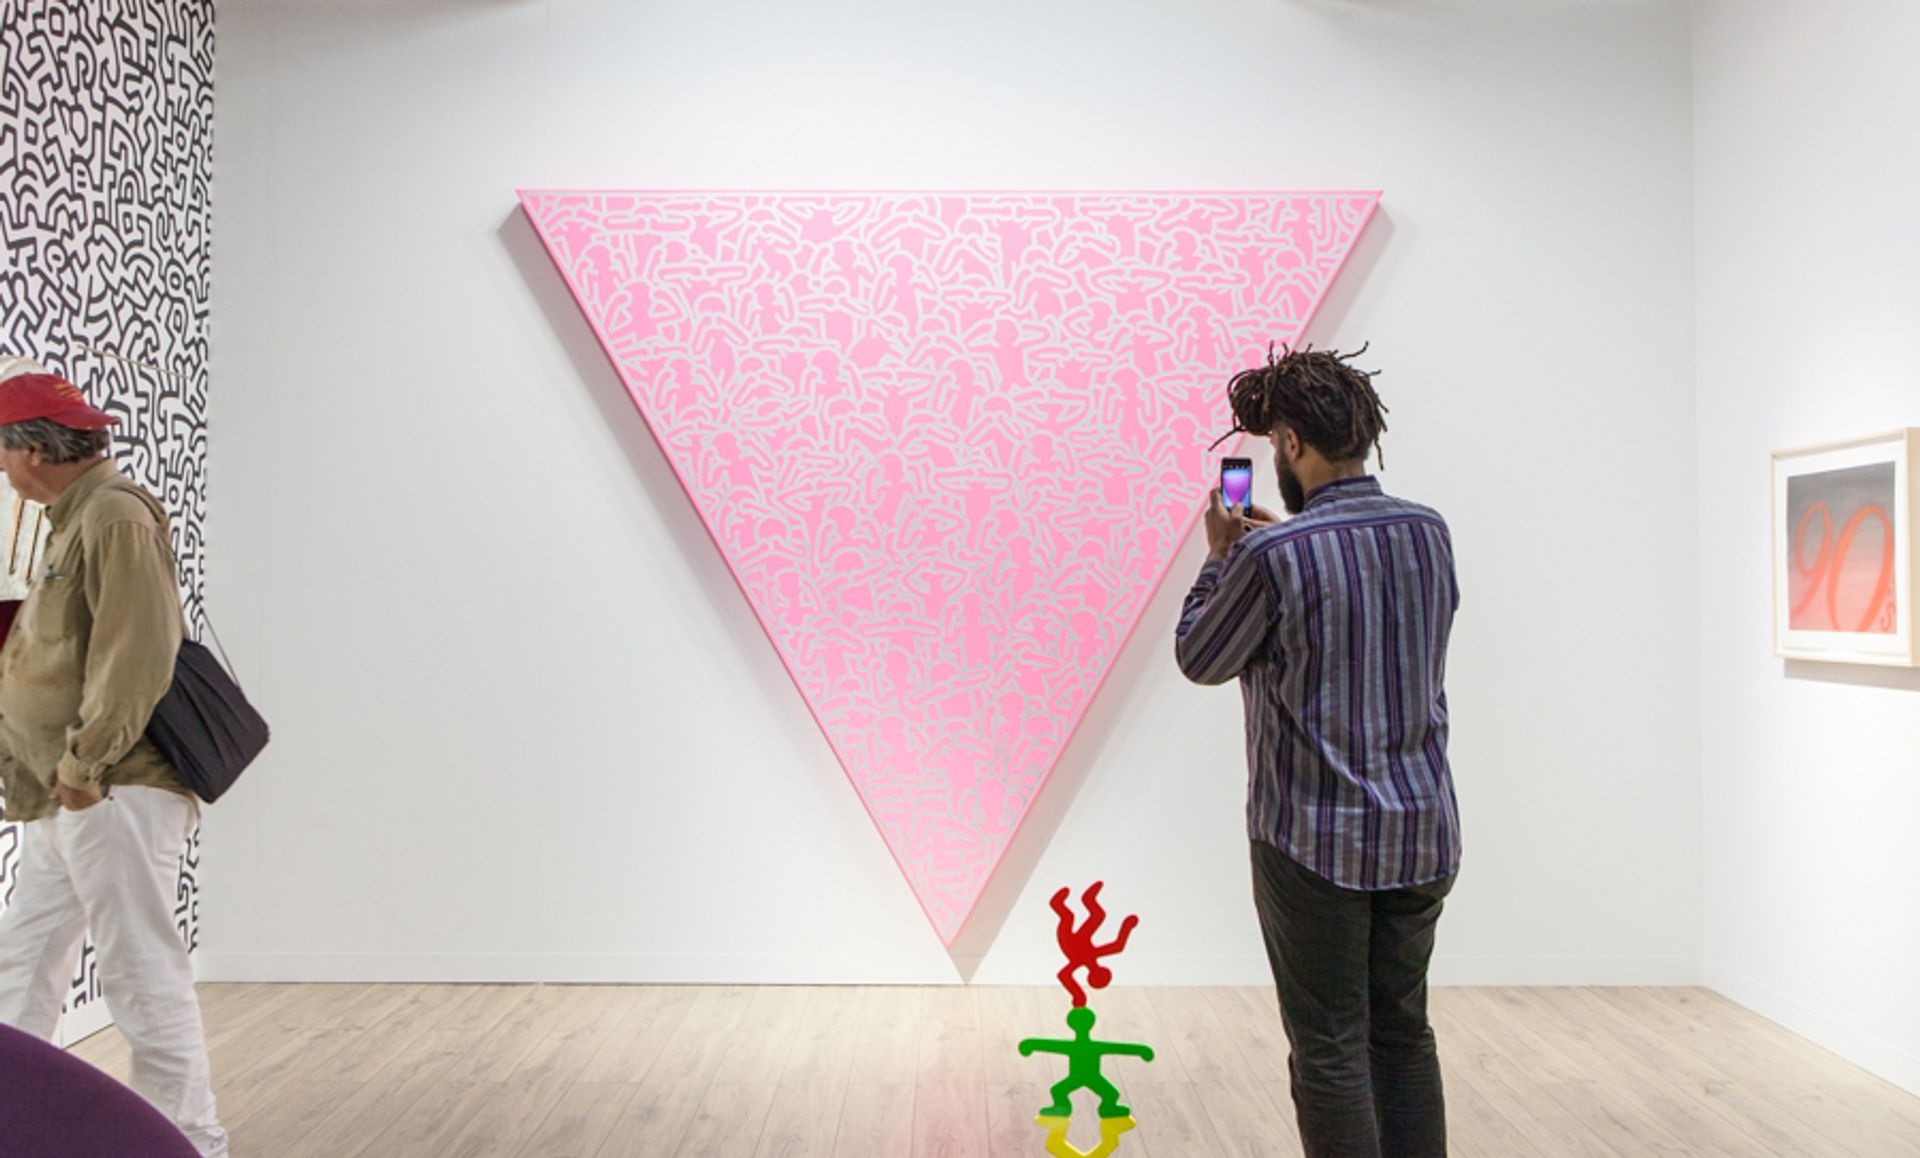 Keith Haring's Silence = Death (1988) is on show at Lévy Gorvy's stand © Vanessa Ruiz